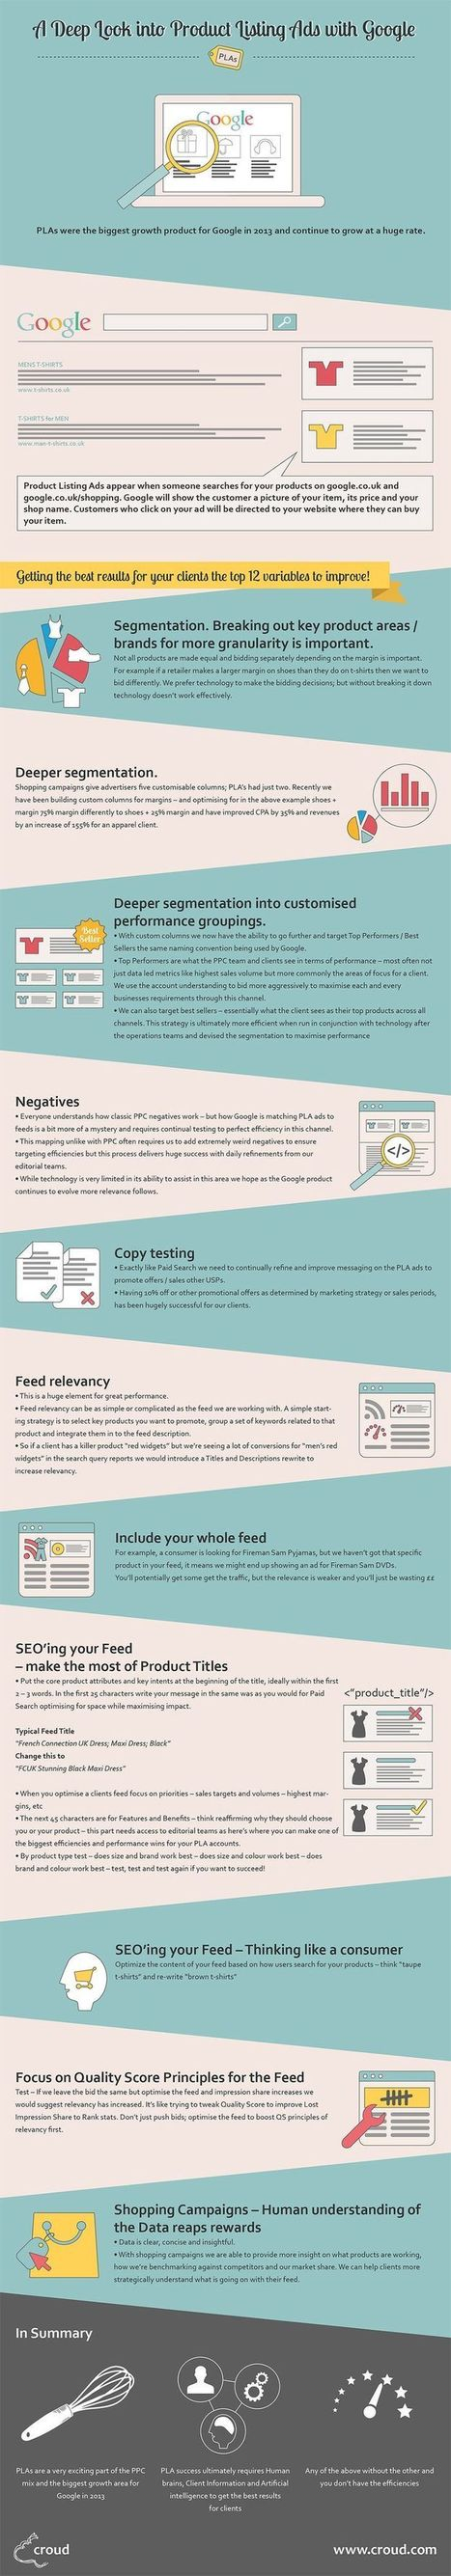 A Deep Look into Product Listing Ads with Google #infographic | Adwords Campaign Optimization | Scoop.it